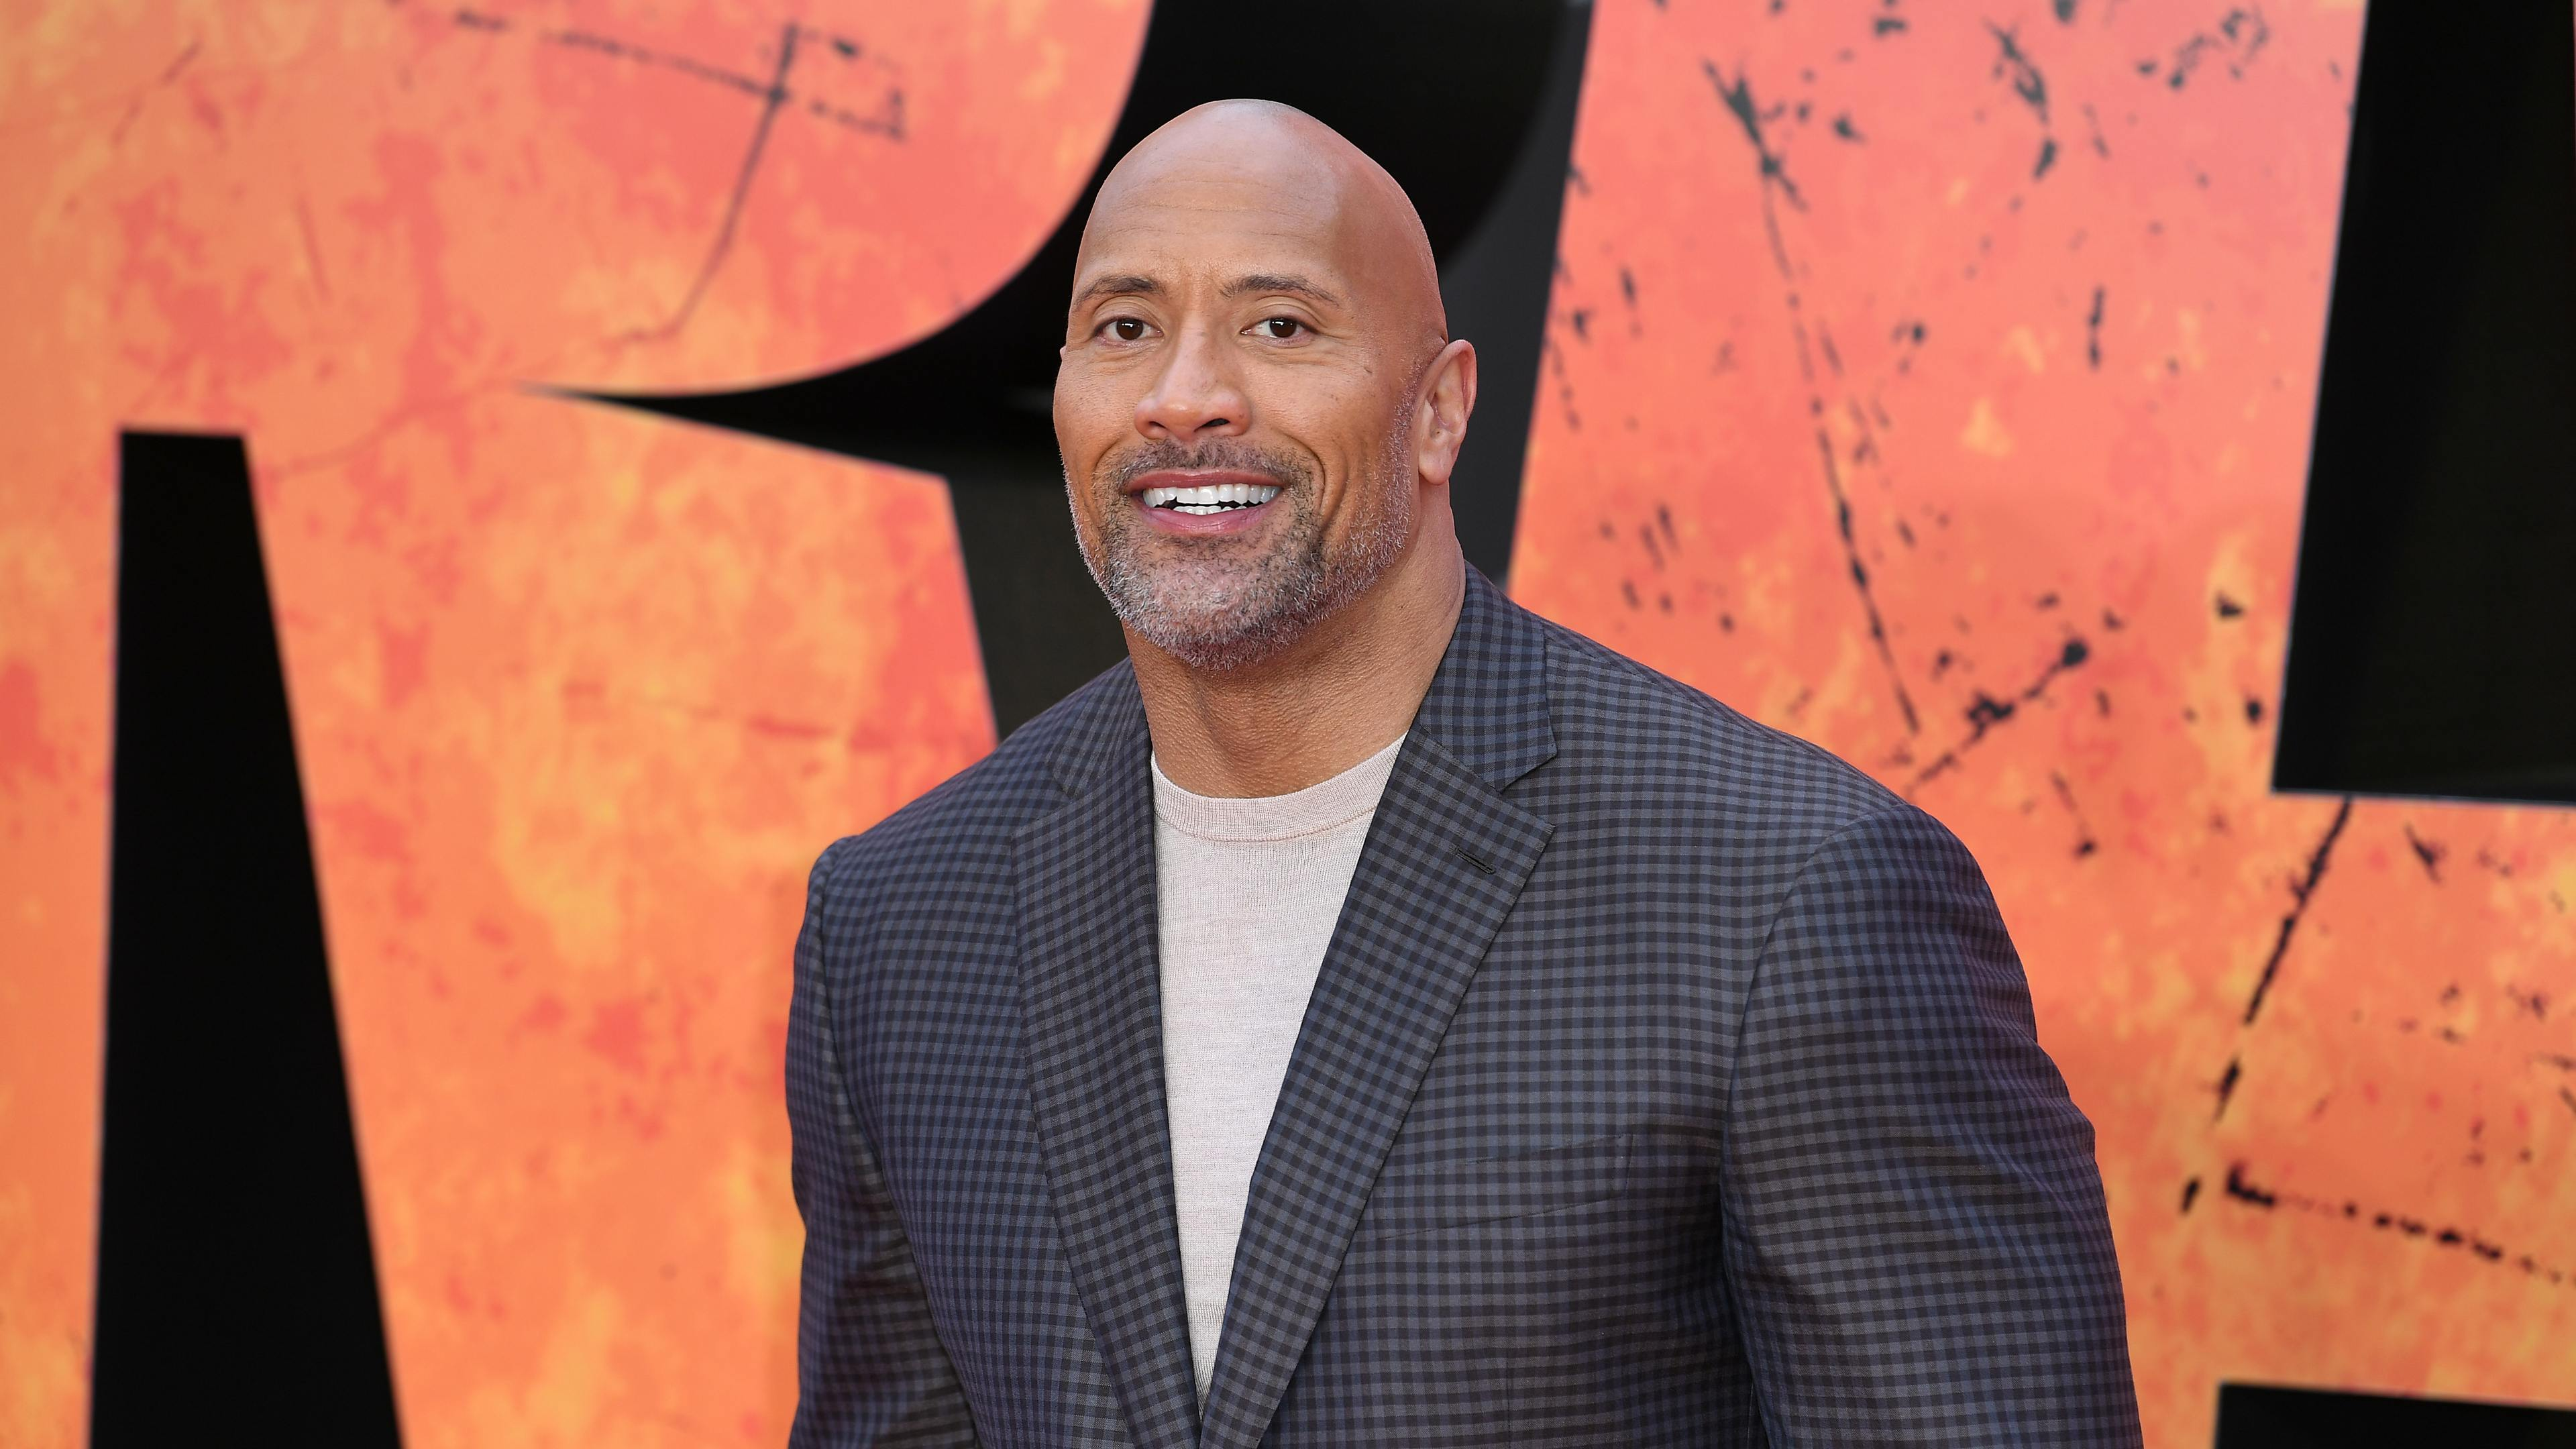 The Rock at the premiere of new movie Rampage